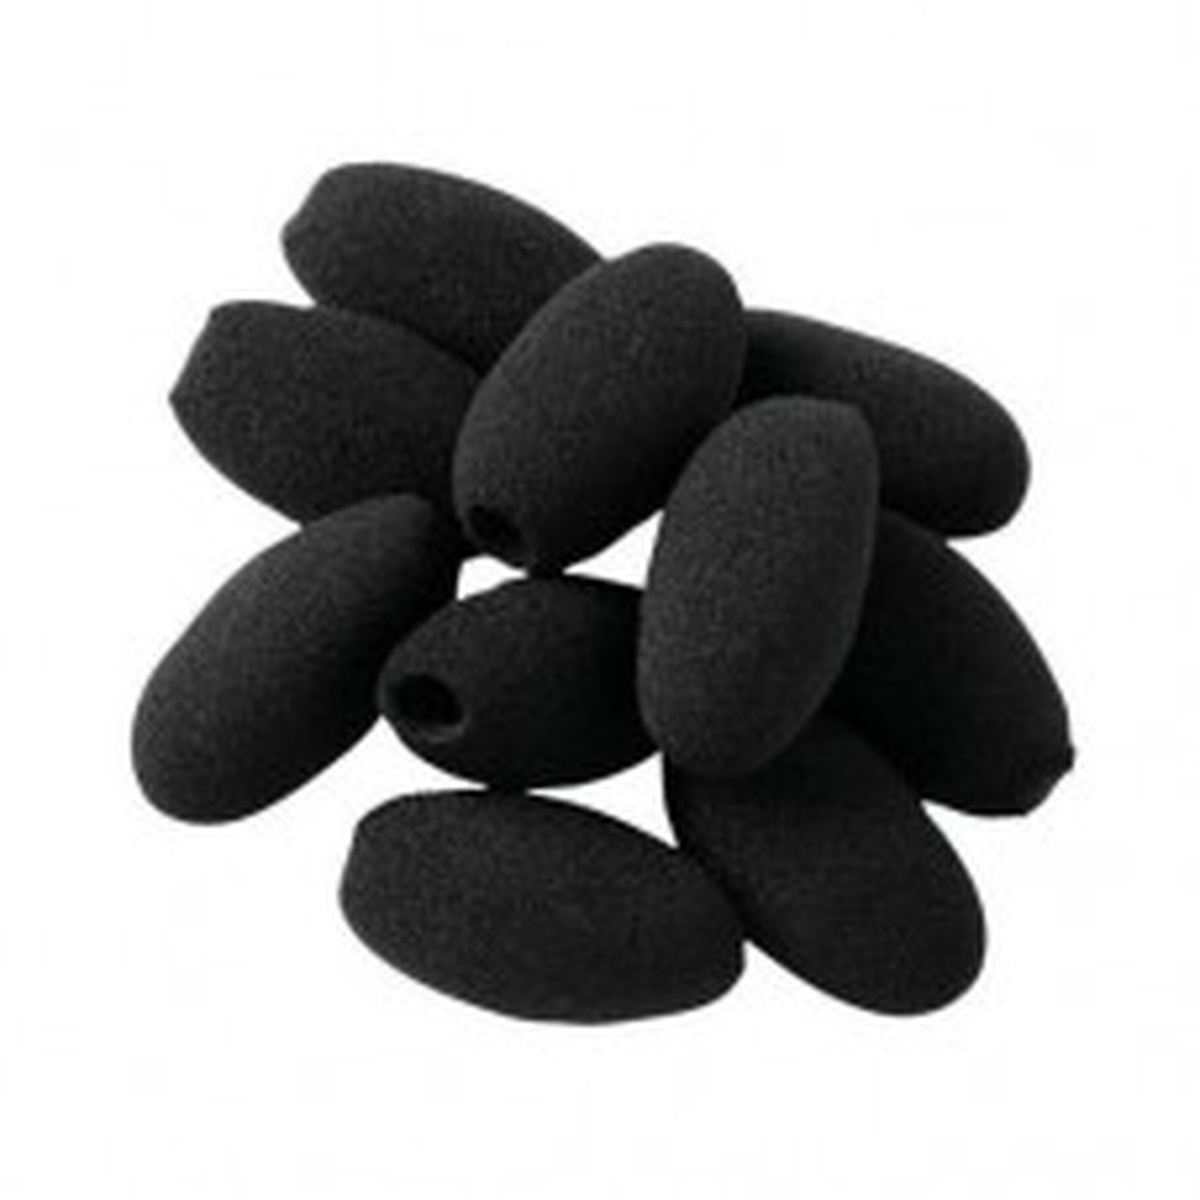 Jabra GN2000 Microphone Foam Tip Pack of 10